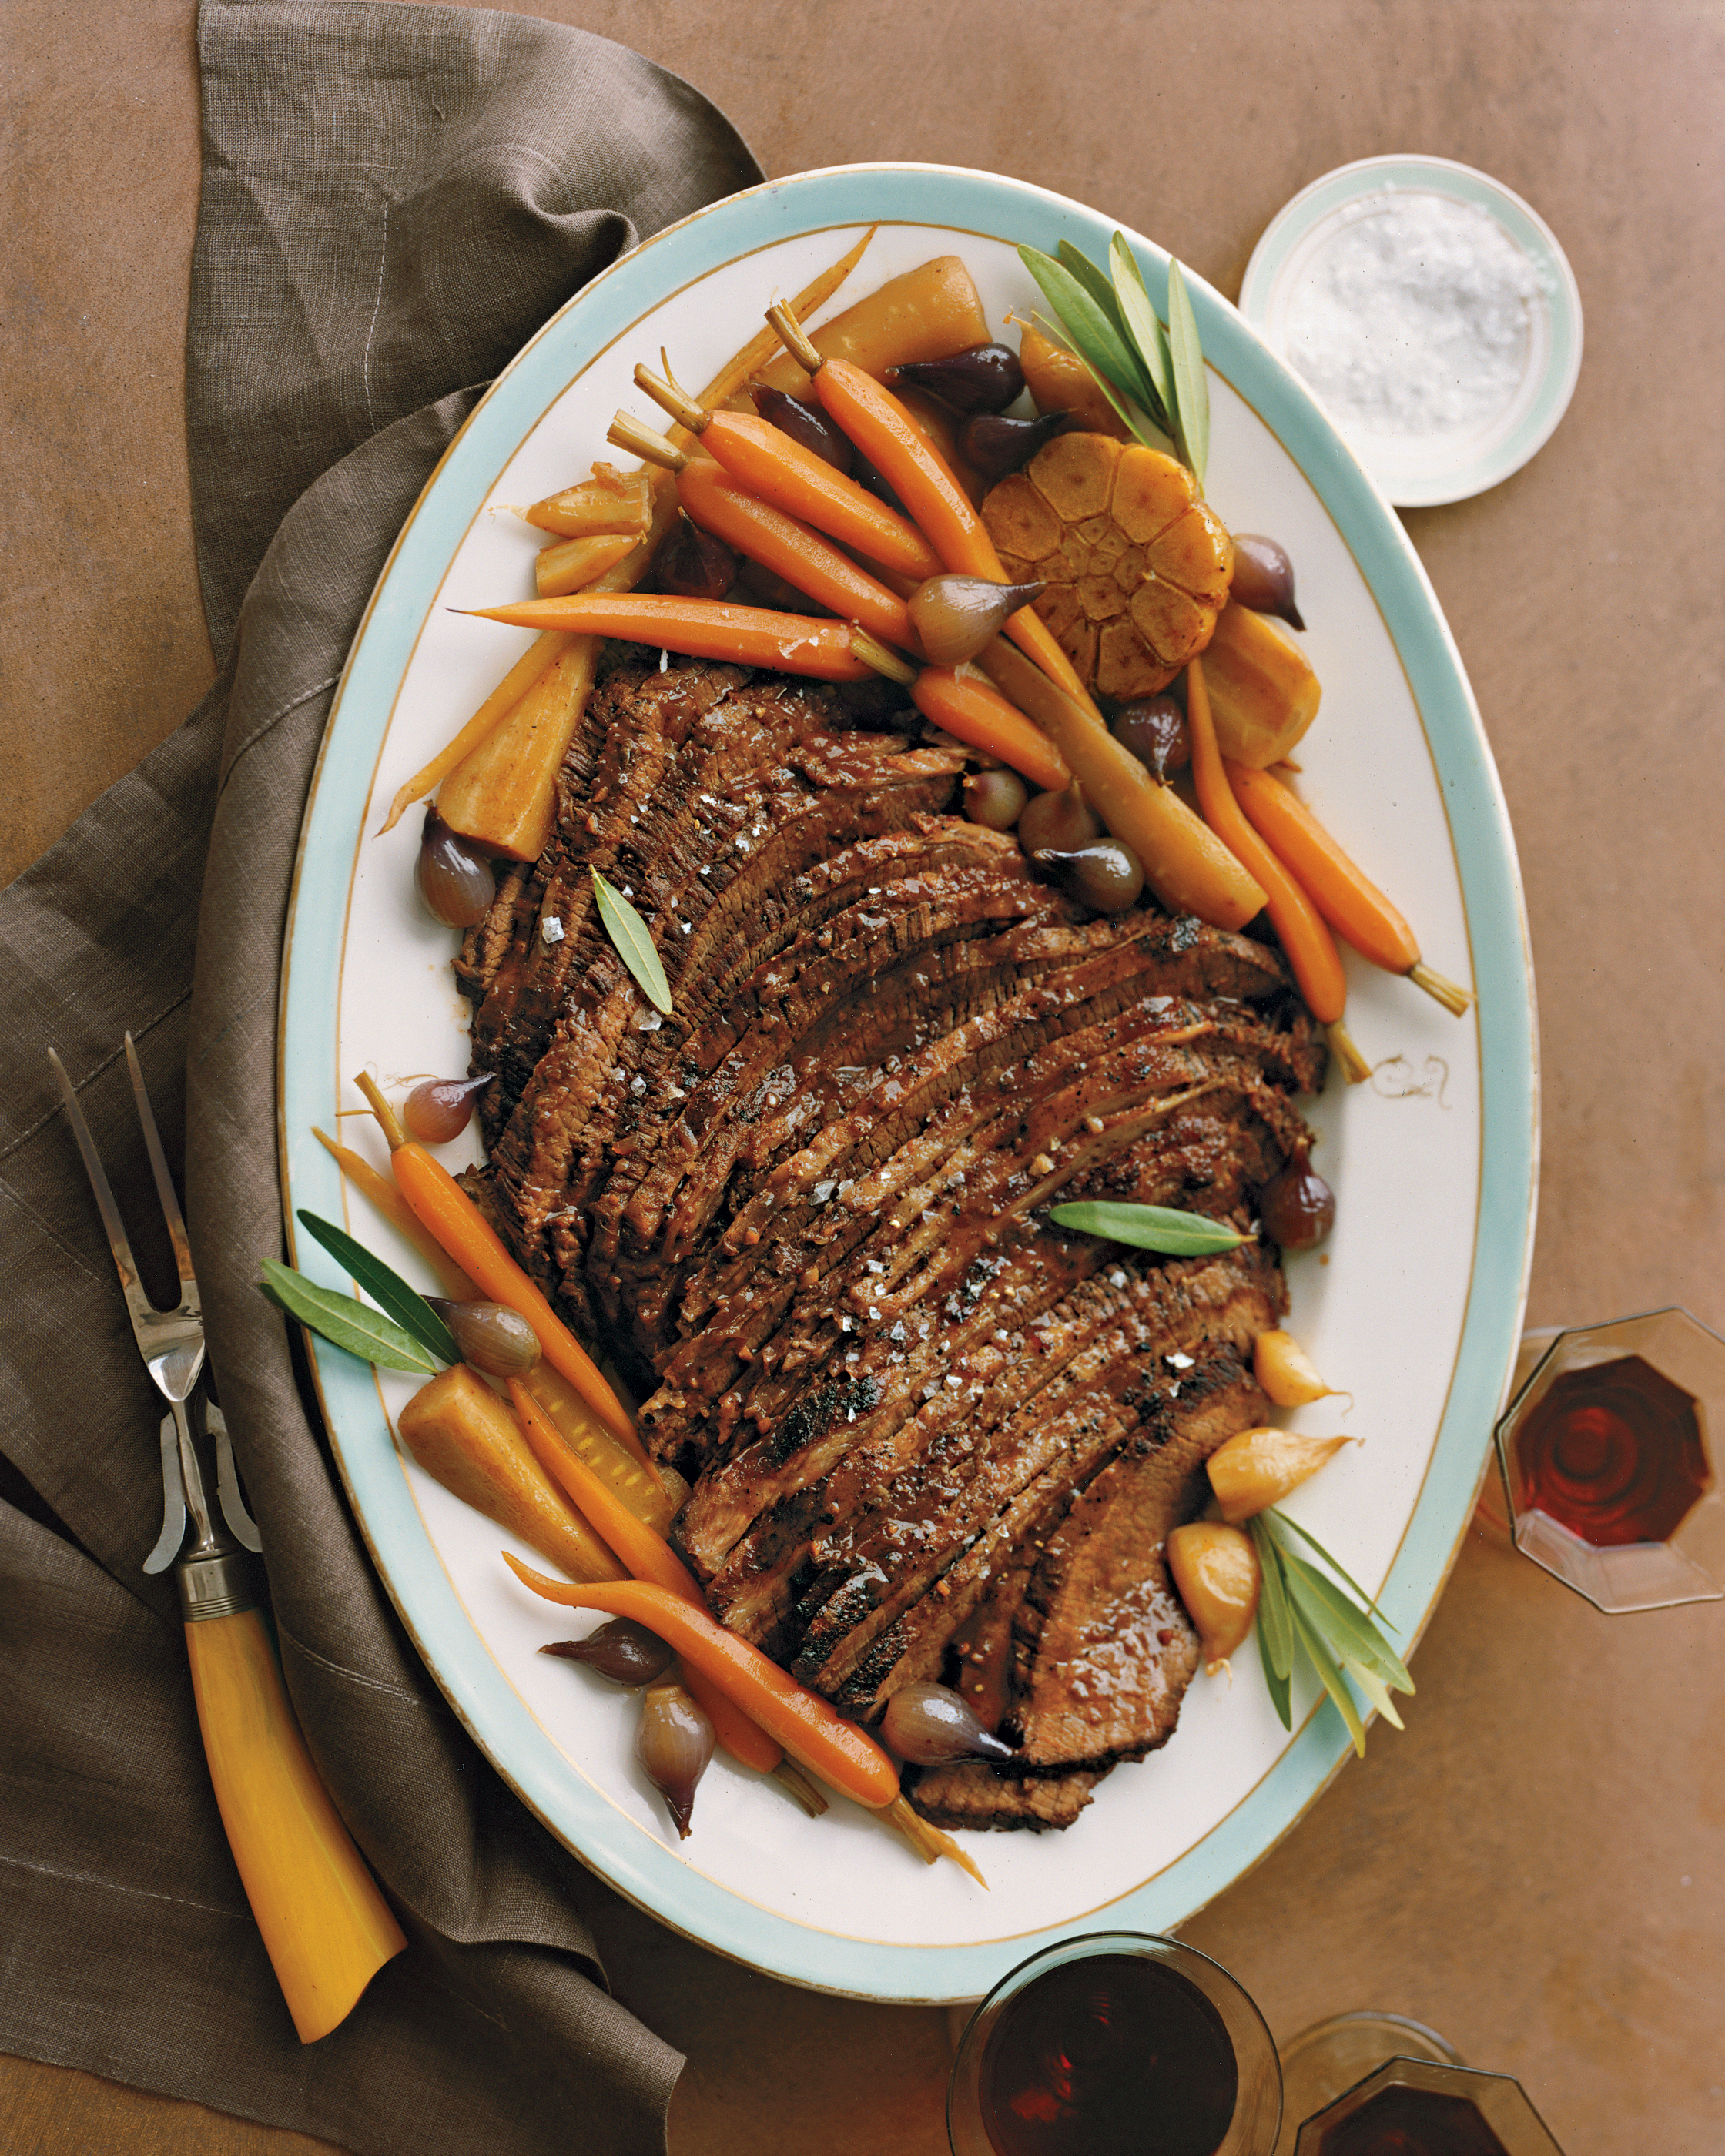 Hanukkah Dinner Recipes That the Whole Family Will Love